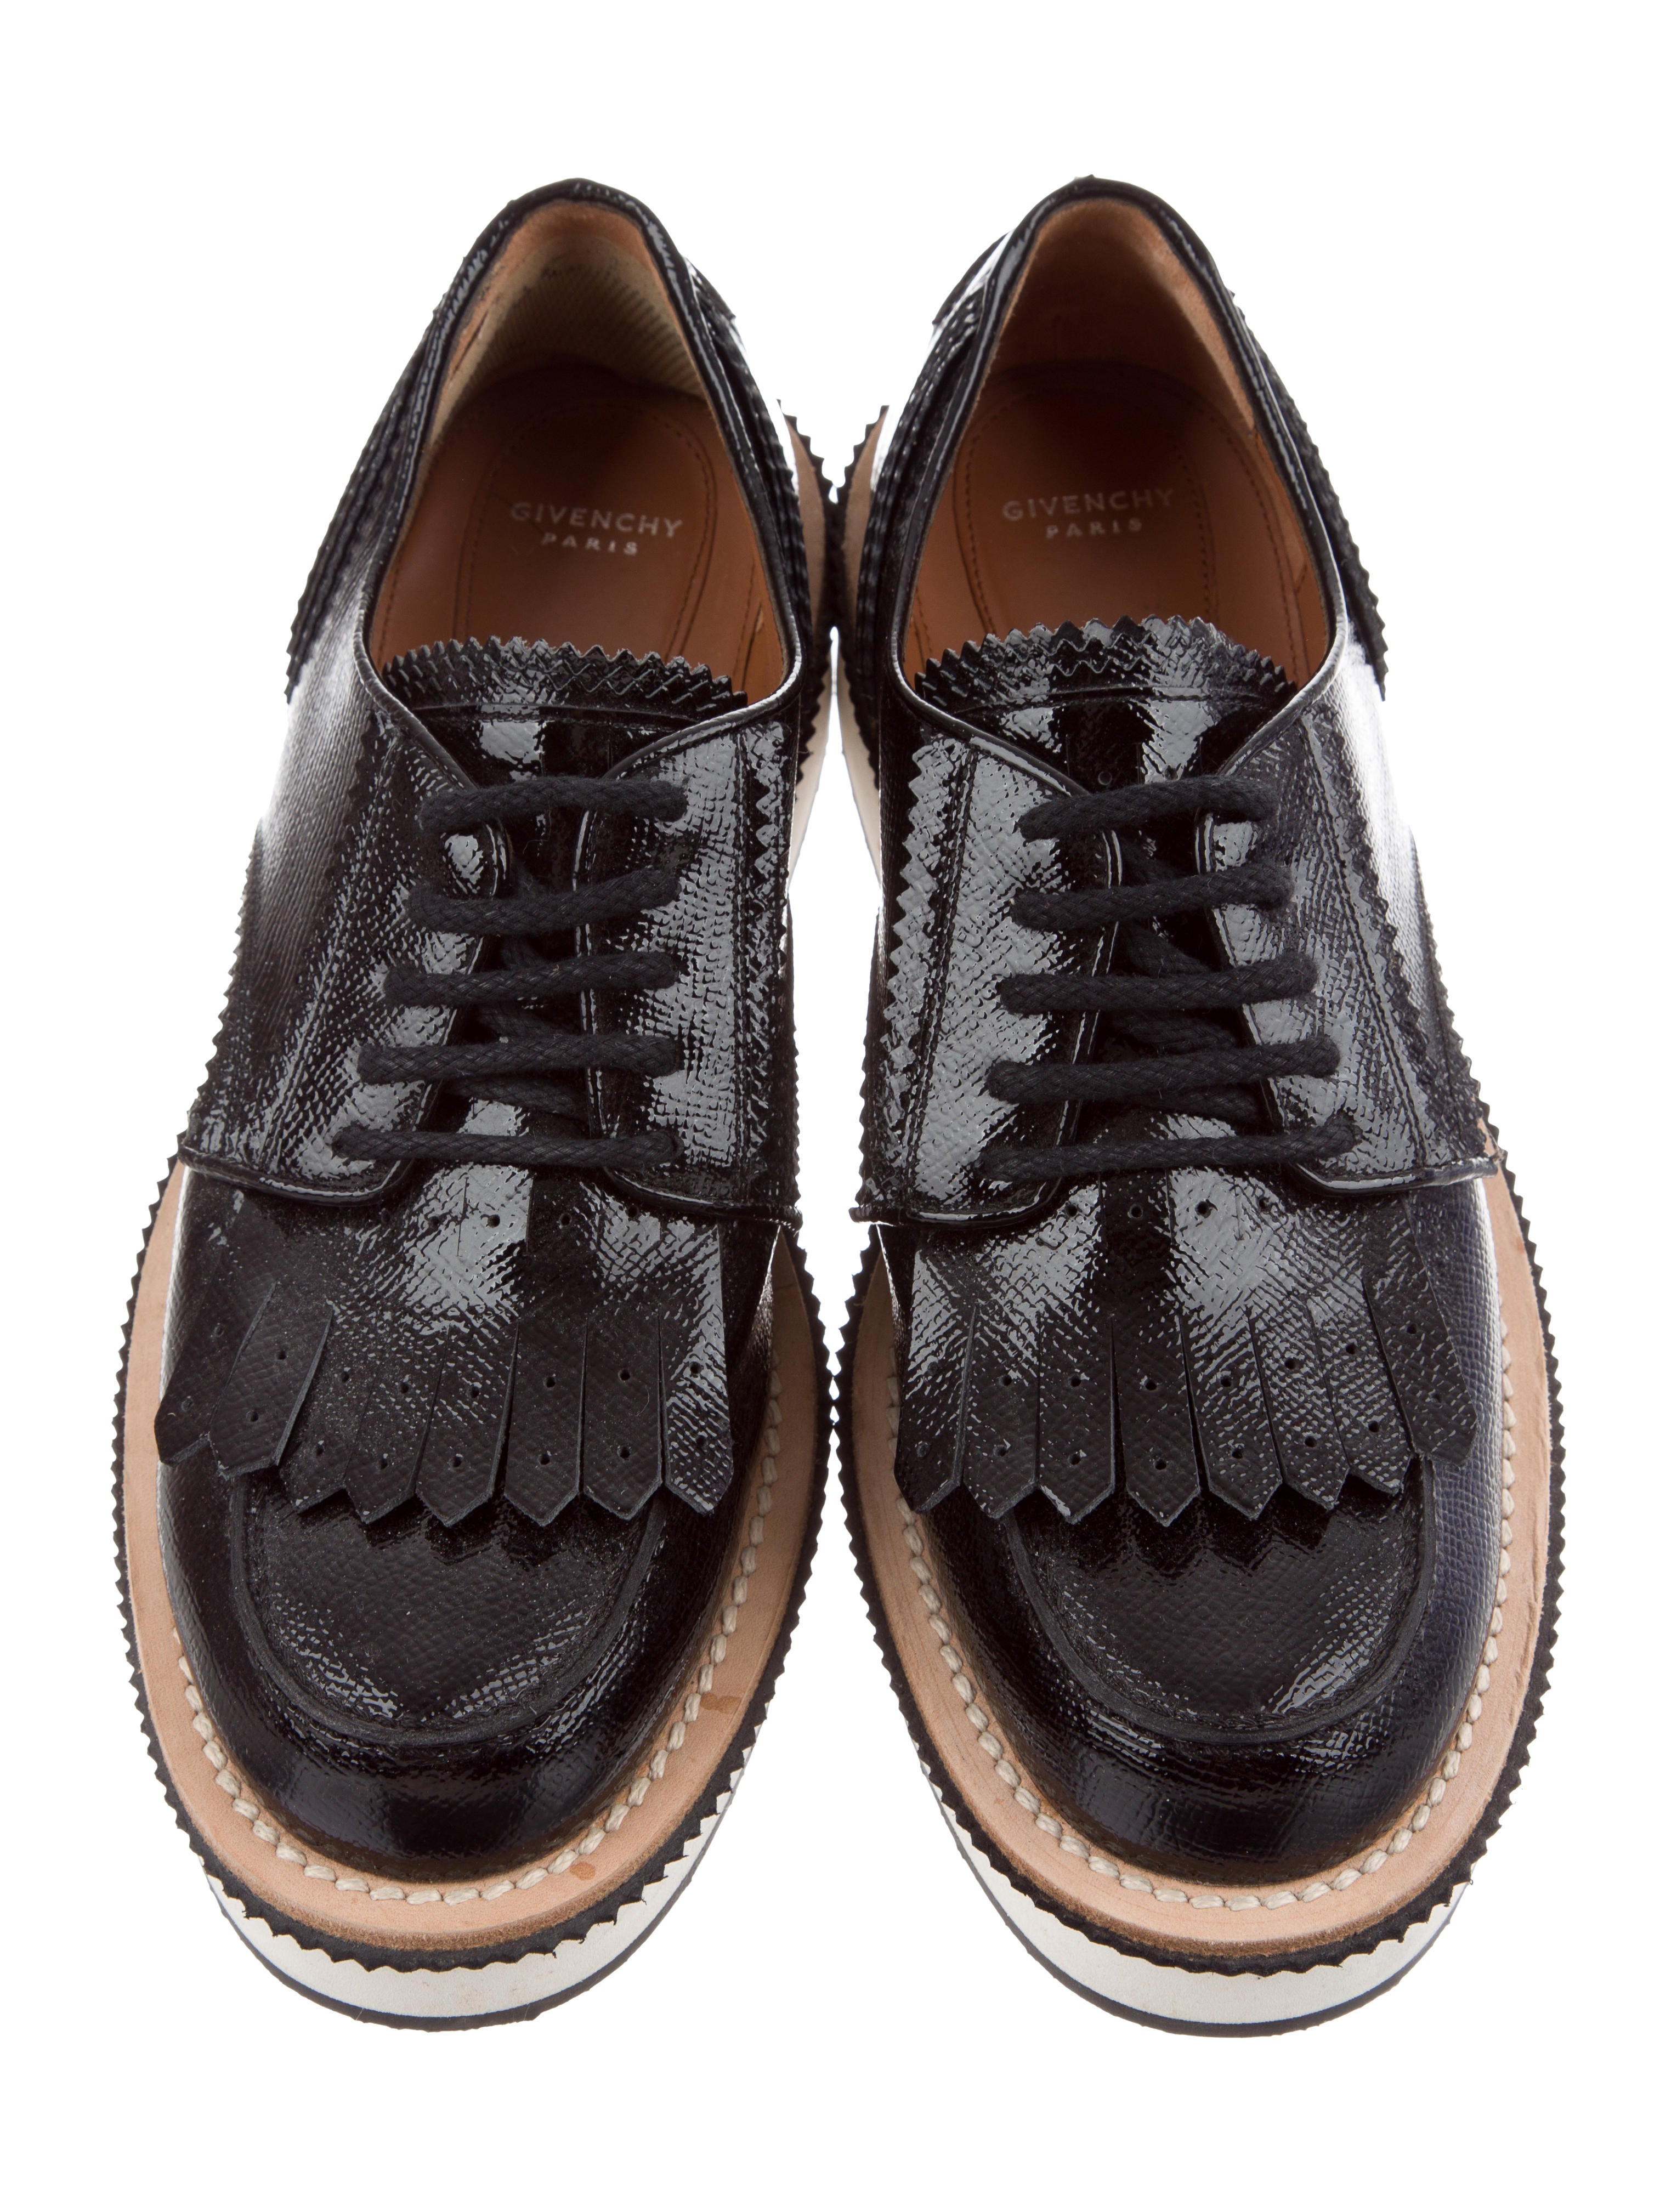 Givenchy 2016 Kiltie Derby Oxfords best wholesale online with paypal online websites for sale shopping online outlet sale X8mPyZ7Ts